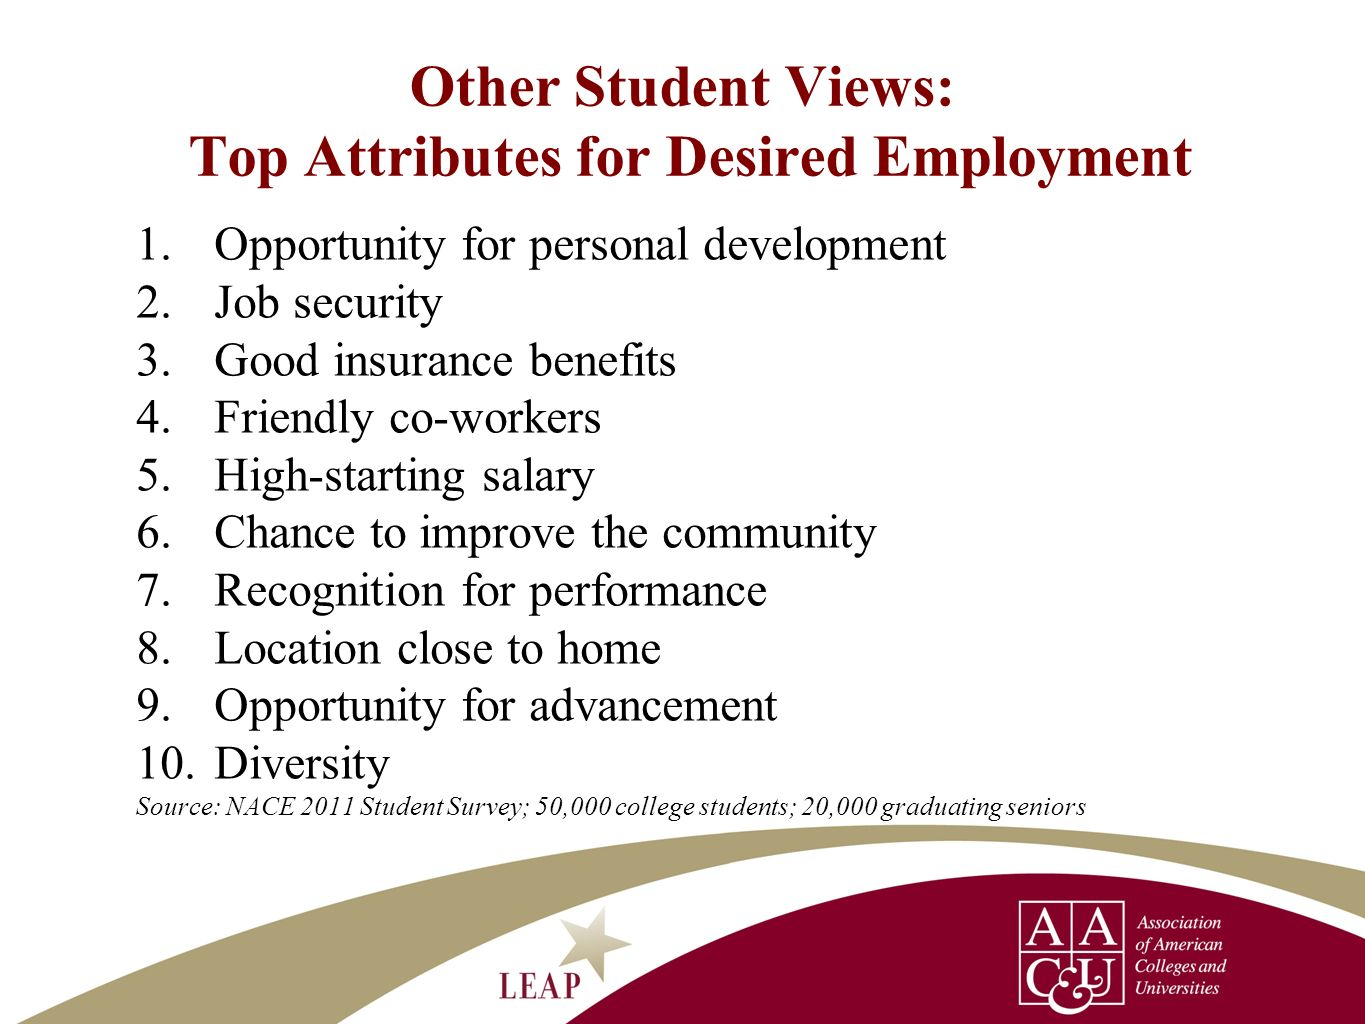 Other Student Views: Top Attributes for Desired Employment